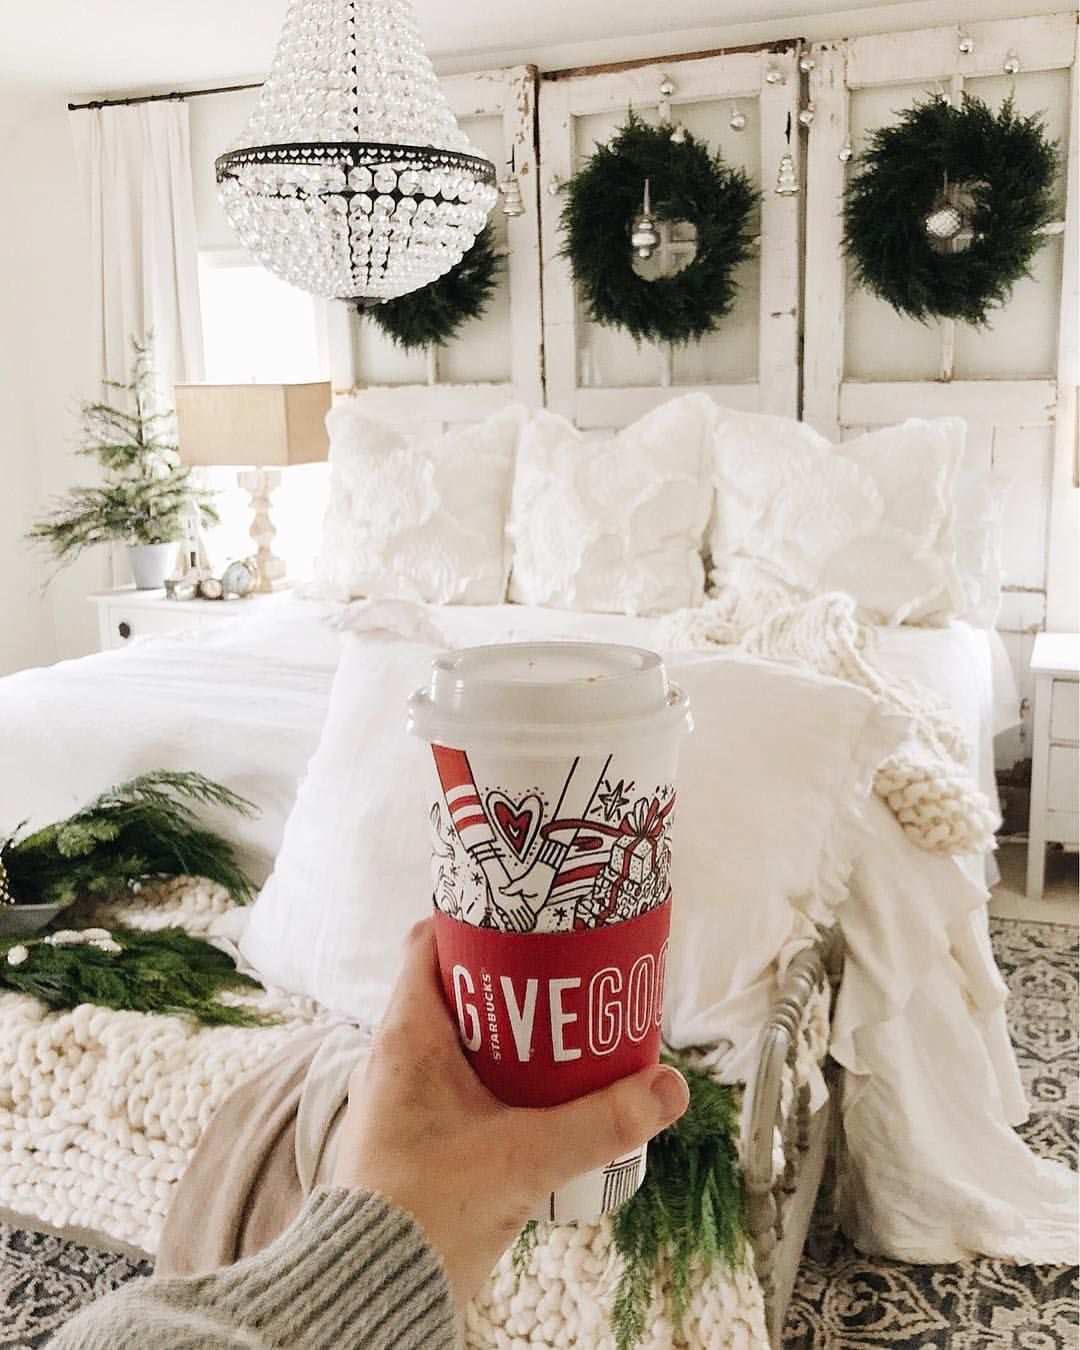 Pin by Nicole Markos on Home for the Holidays   Pinterest   House ...